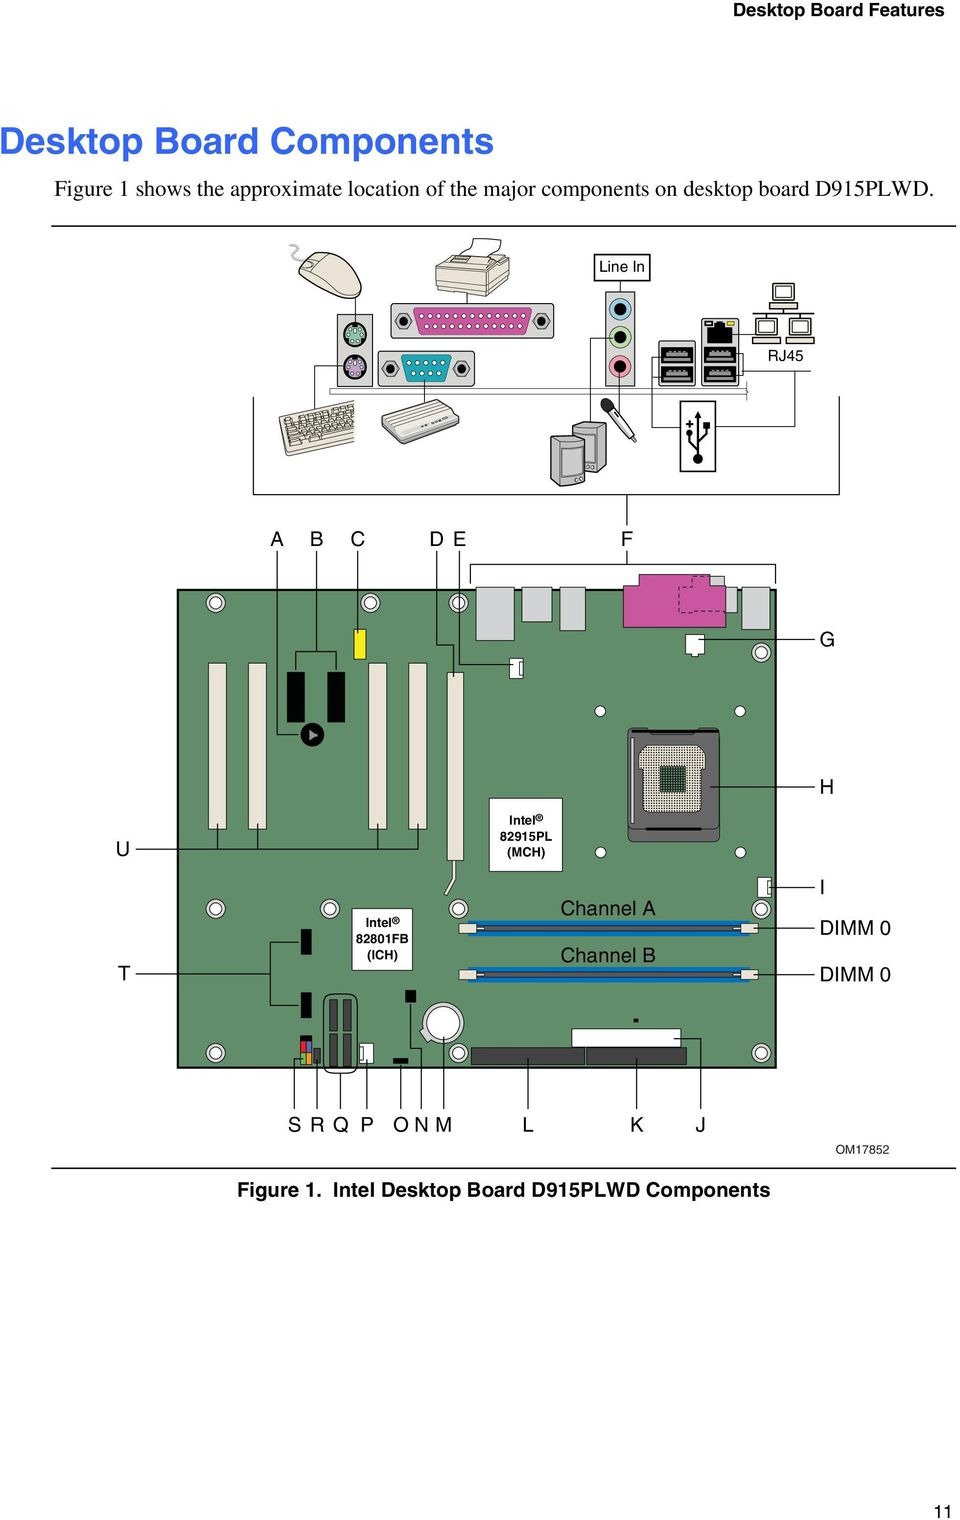 Line In RJ45 A B C D E F G H U Intel 82915PL (MCH) T Intel 82801FB (ICH) Channel